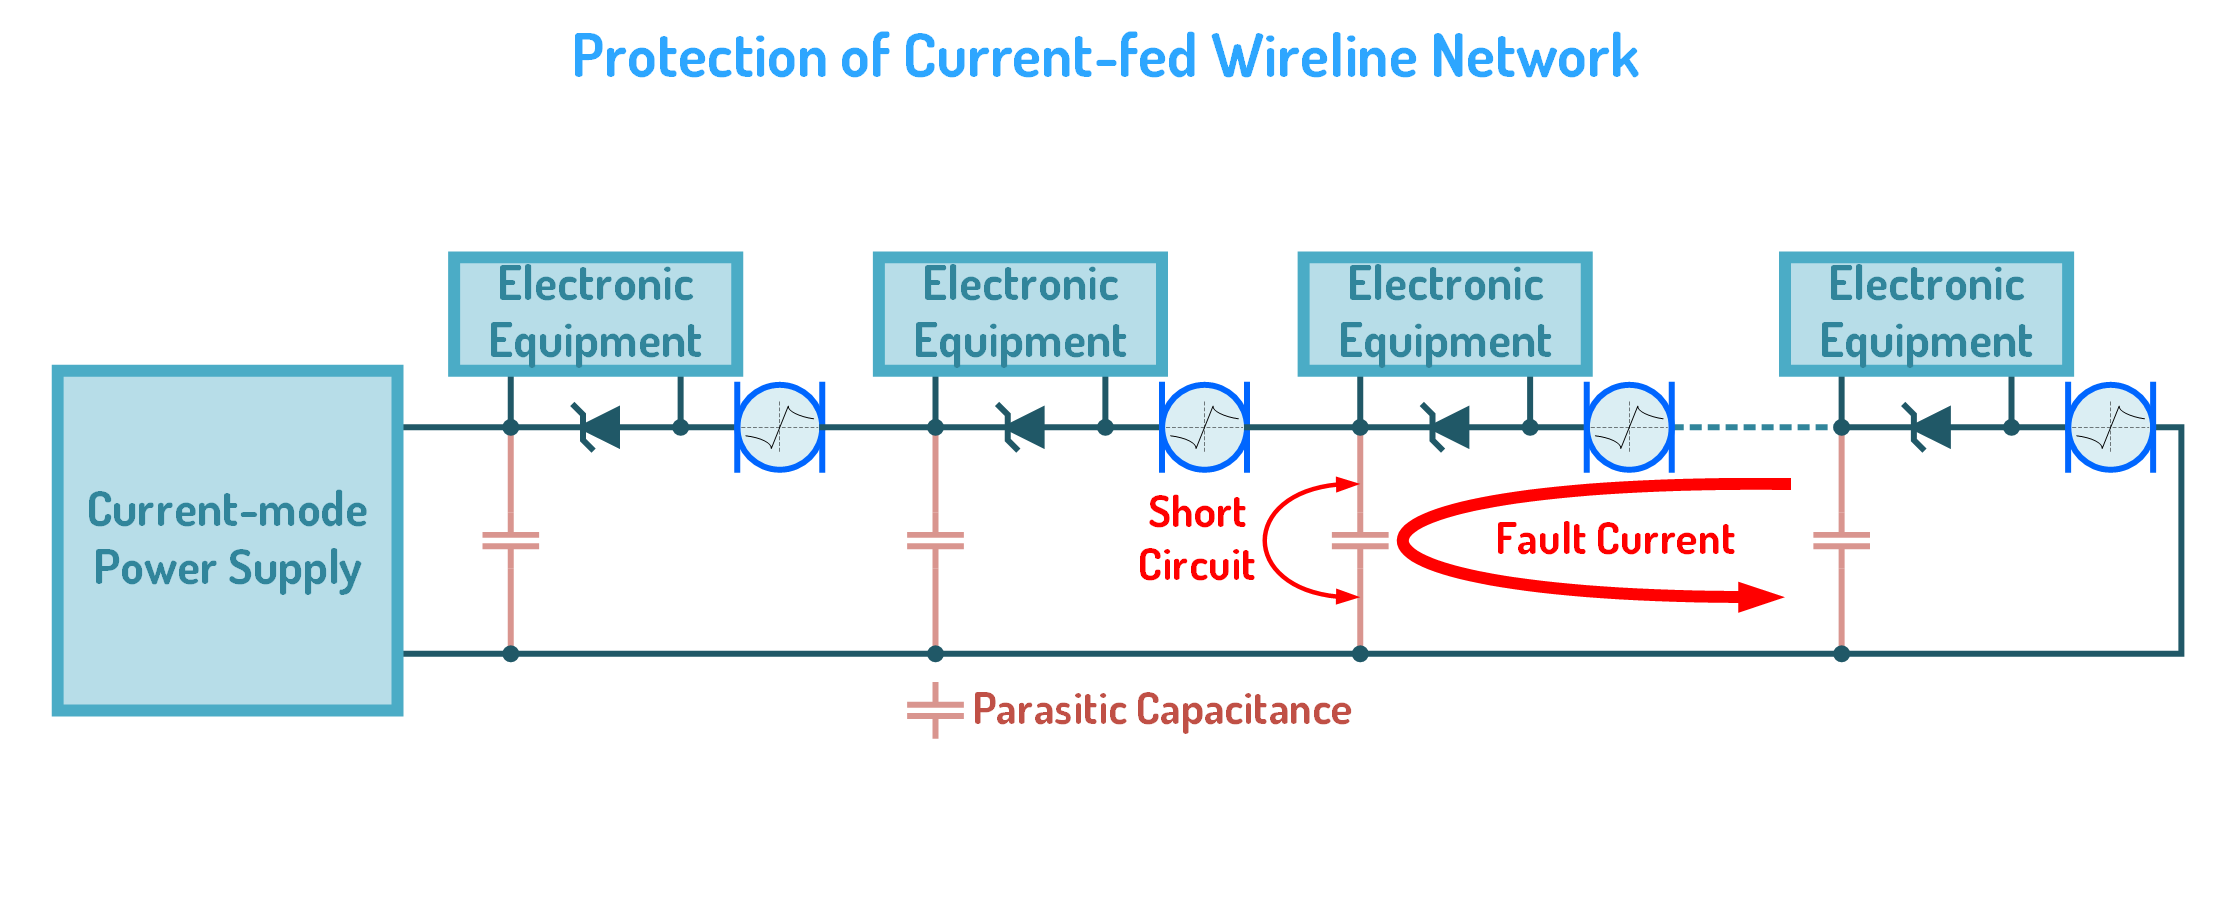 Protection of Current-fed Equipment in Wireline Network against Short-circuit Surges